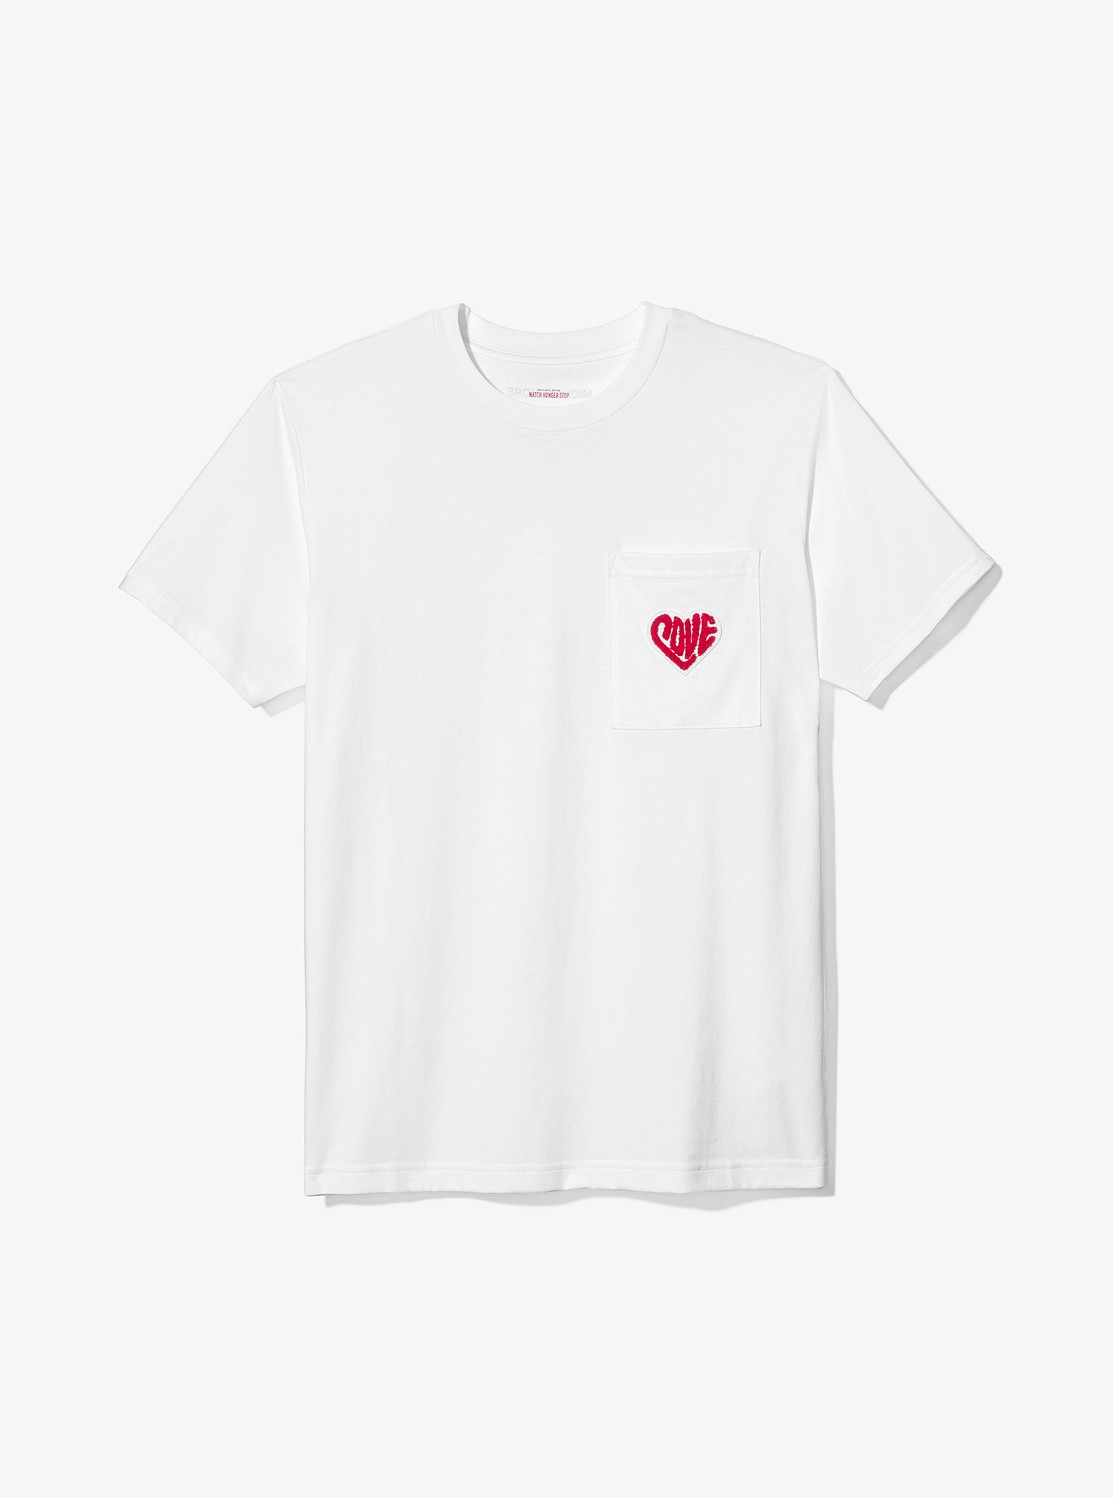 Watch Hunger Stop 2020 LOVE Tシャツ - チャリティ